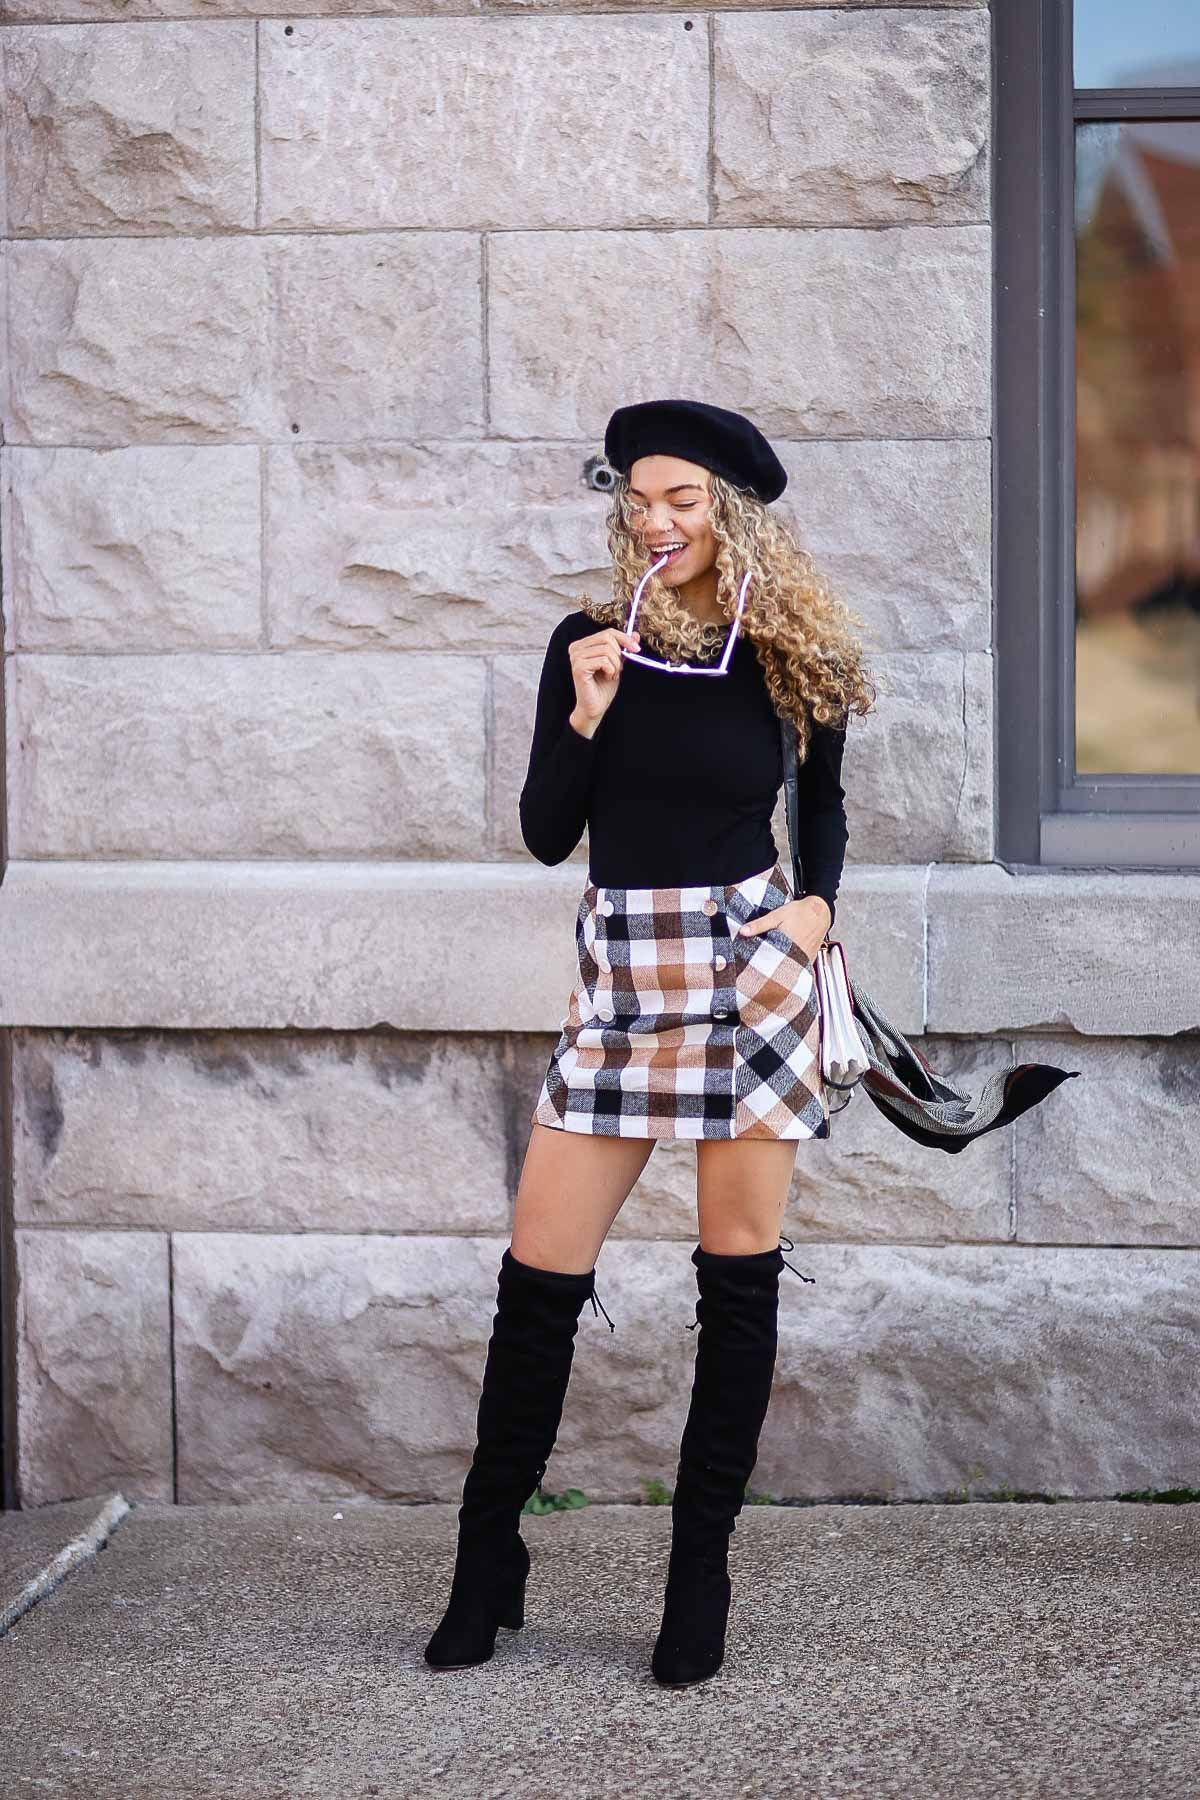 Plaid skirt outfit with beret